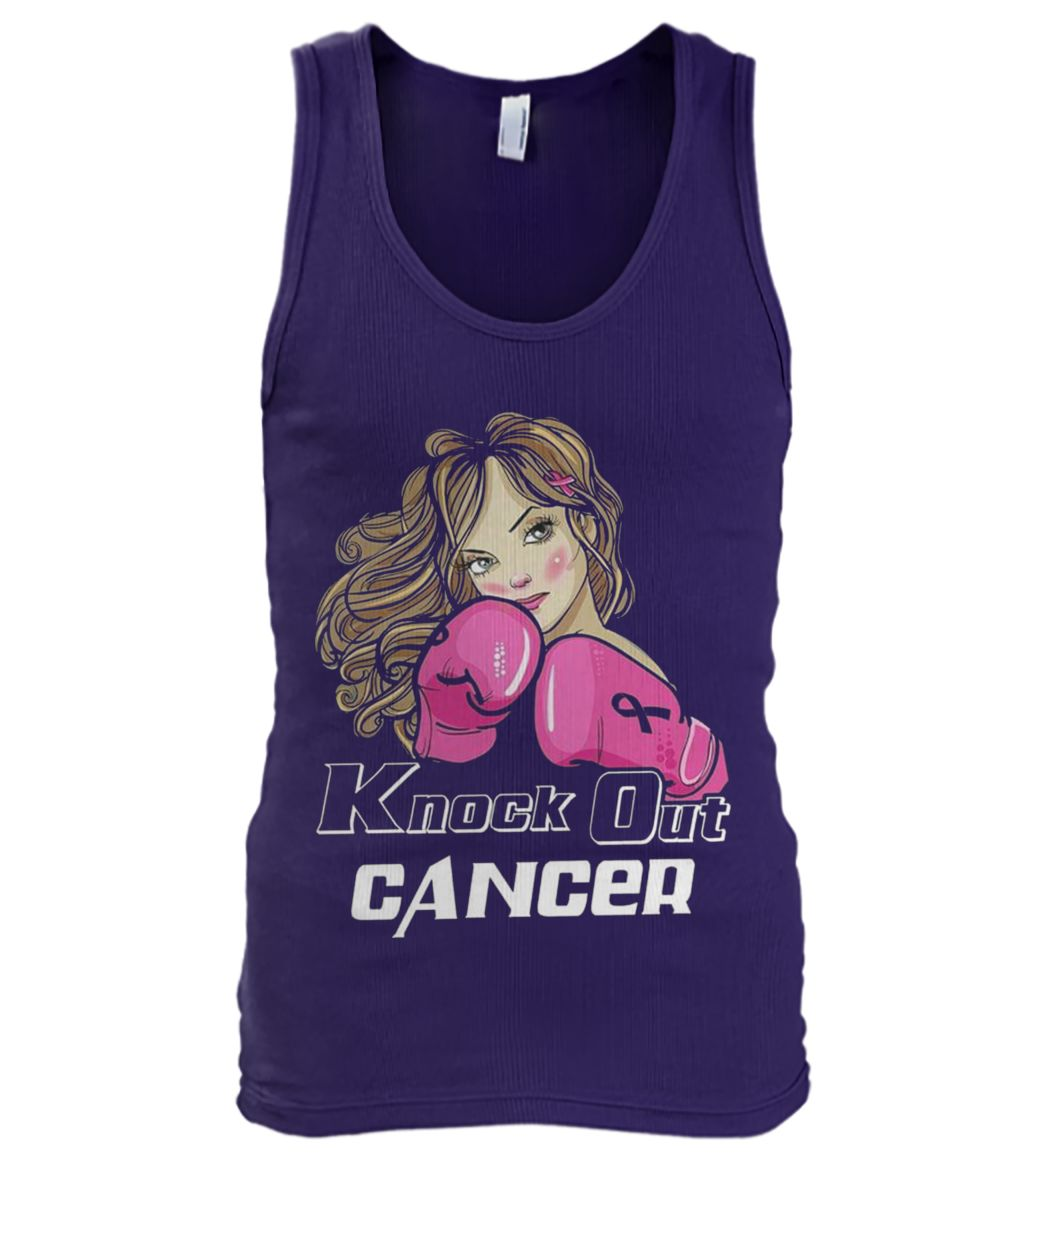 Knock out breast cancer men's tank top